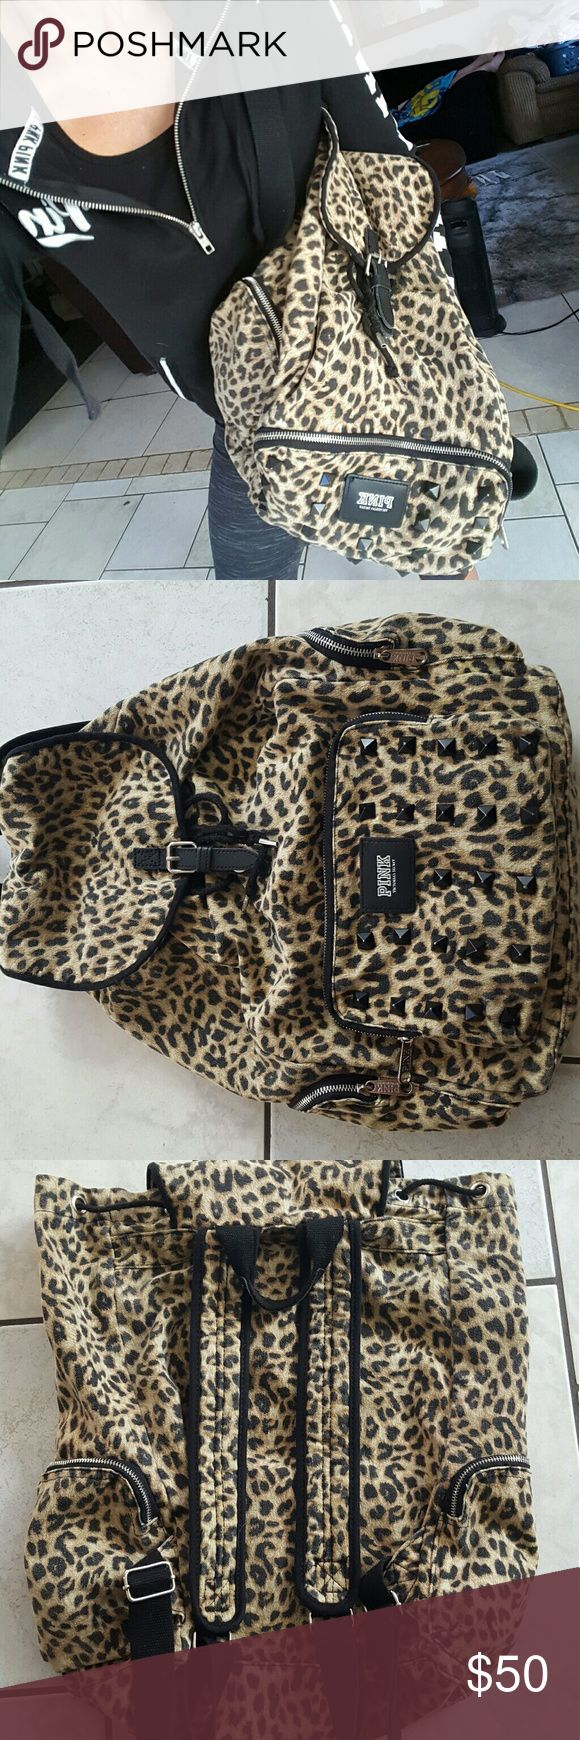 LN, VS Pink cheetah backpack Like new vs pink cheetah backpack with tons of room inside has a pull string underneath a clip. Has pockets on both outsides. Is studded with logo on front. Large backpack. pink Bags Backpacks